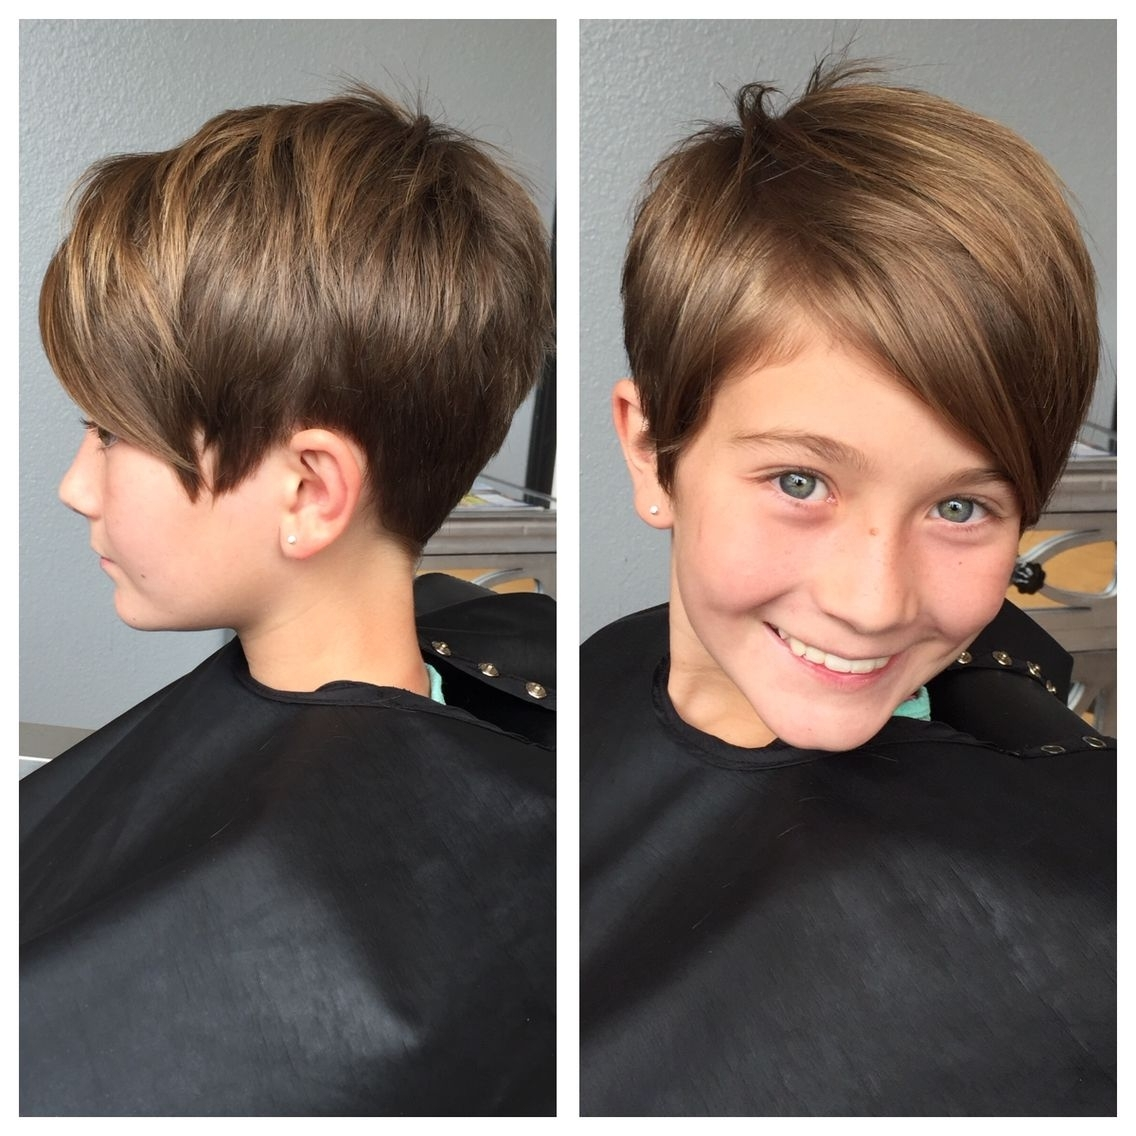 Kids Pixie Haircut | Hair | Pinterest | Pixie Haircut, Pixies And Intended For Most Up To Date Little Girl Pixie Hairstyles (View 3 of 15)